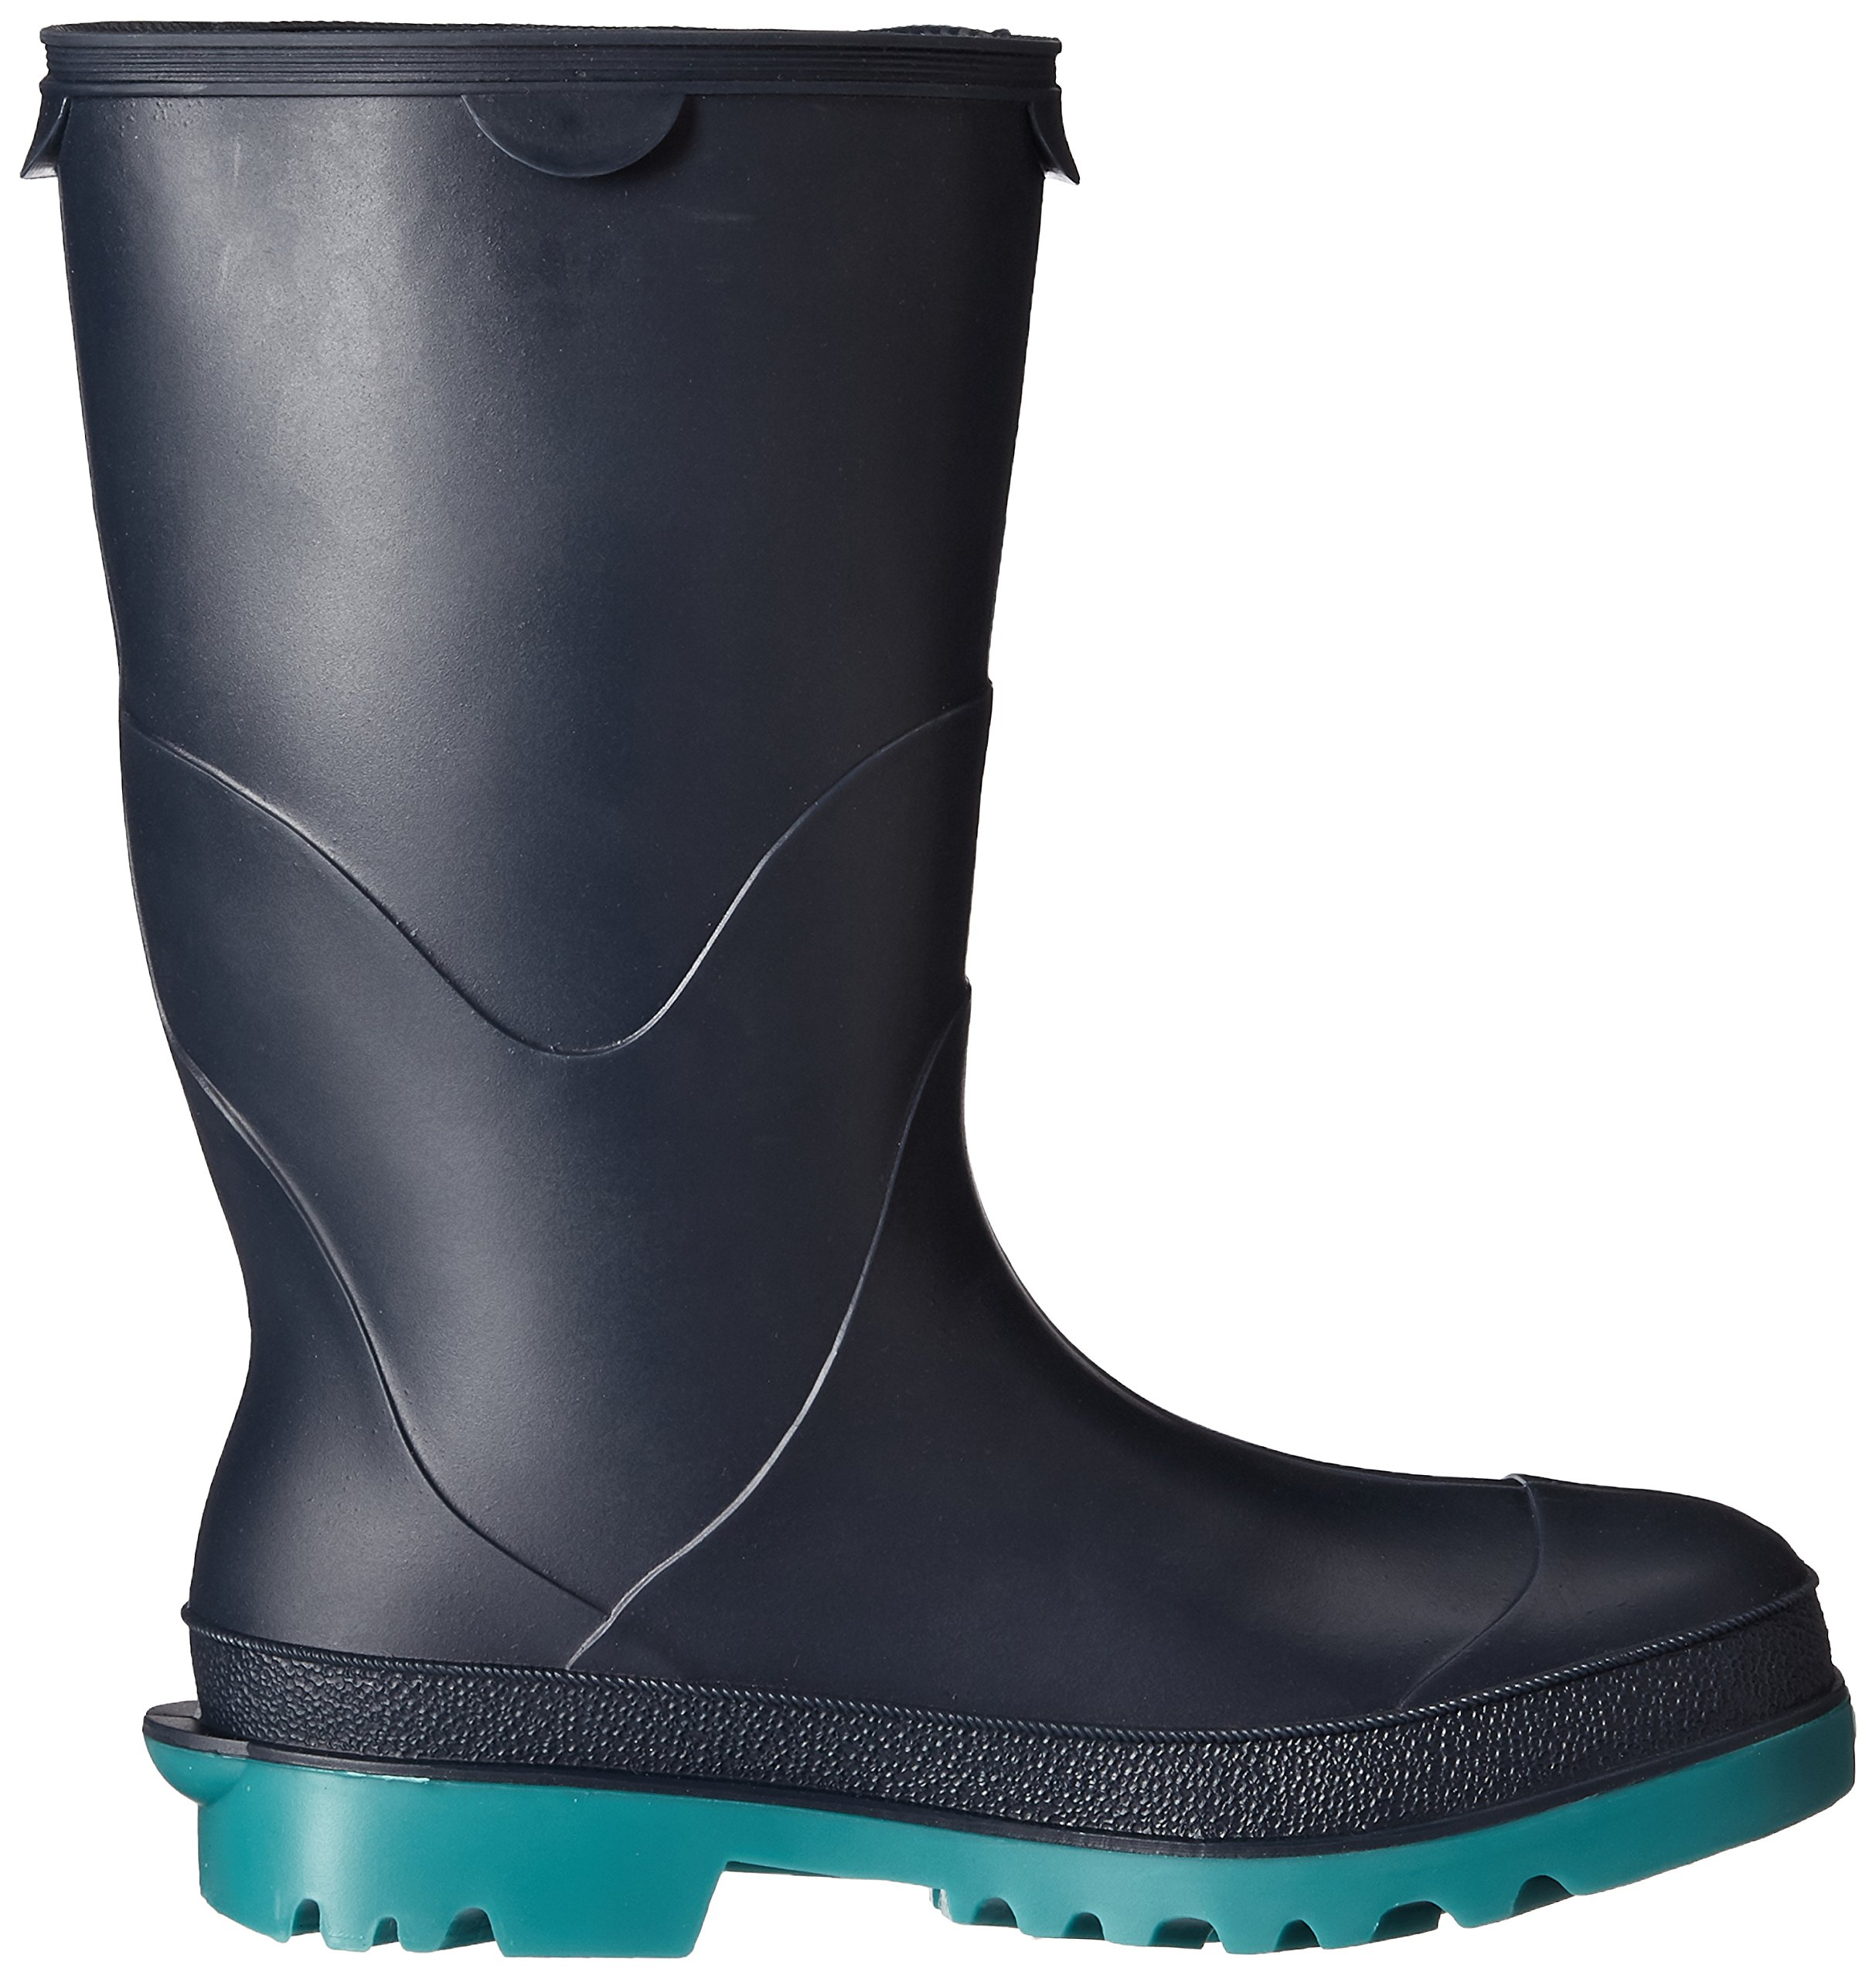 STORMTRACKS 11768.03 Youths' Boot, Size 03, Blue/Green by STORMTRACKS (Image #8)